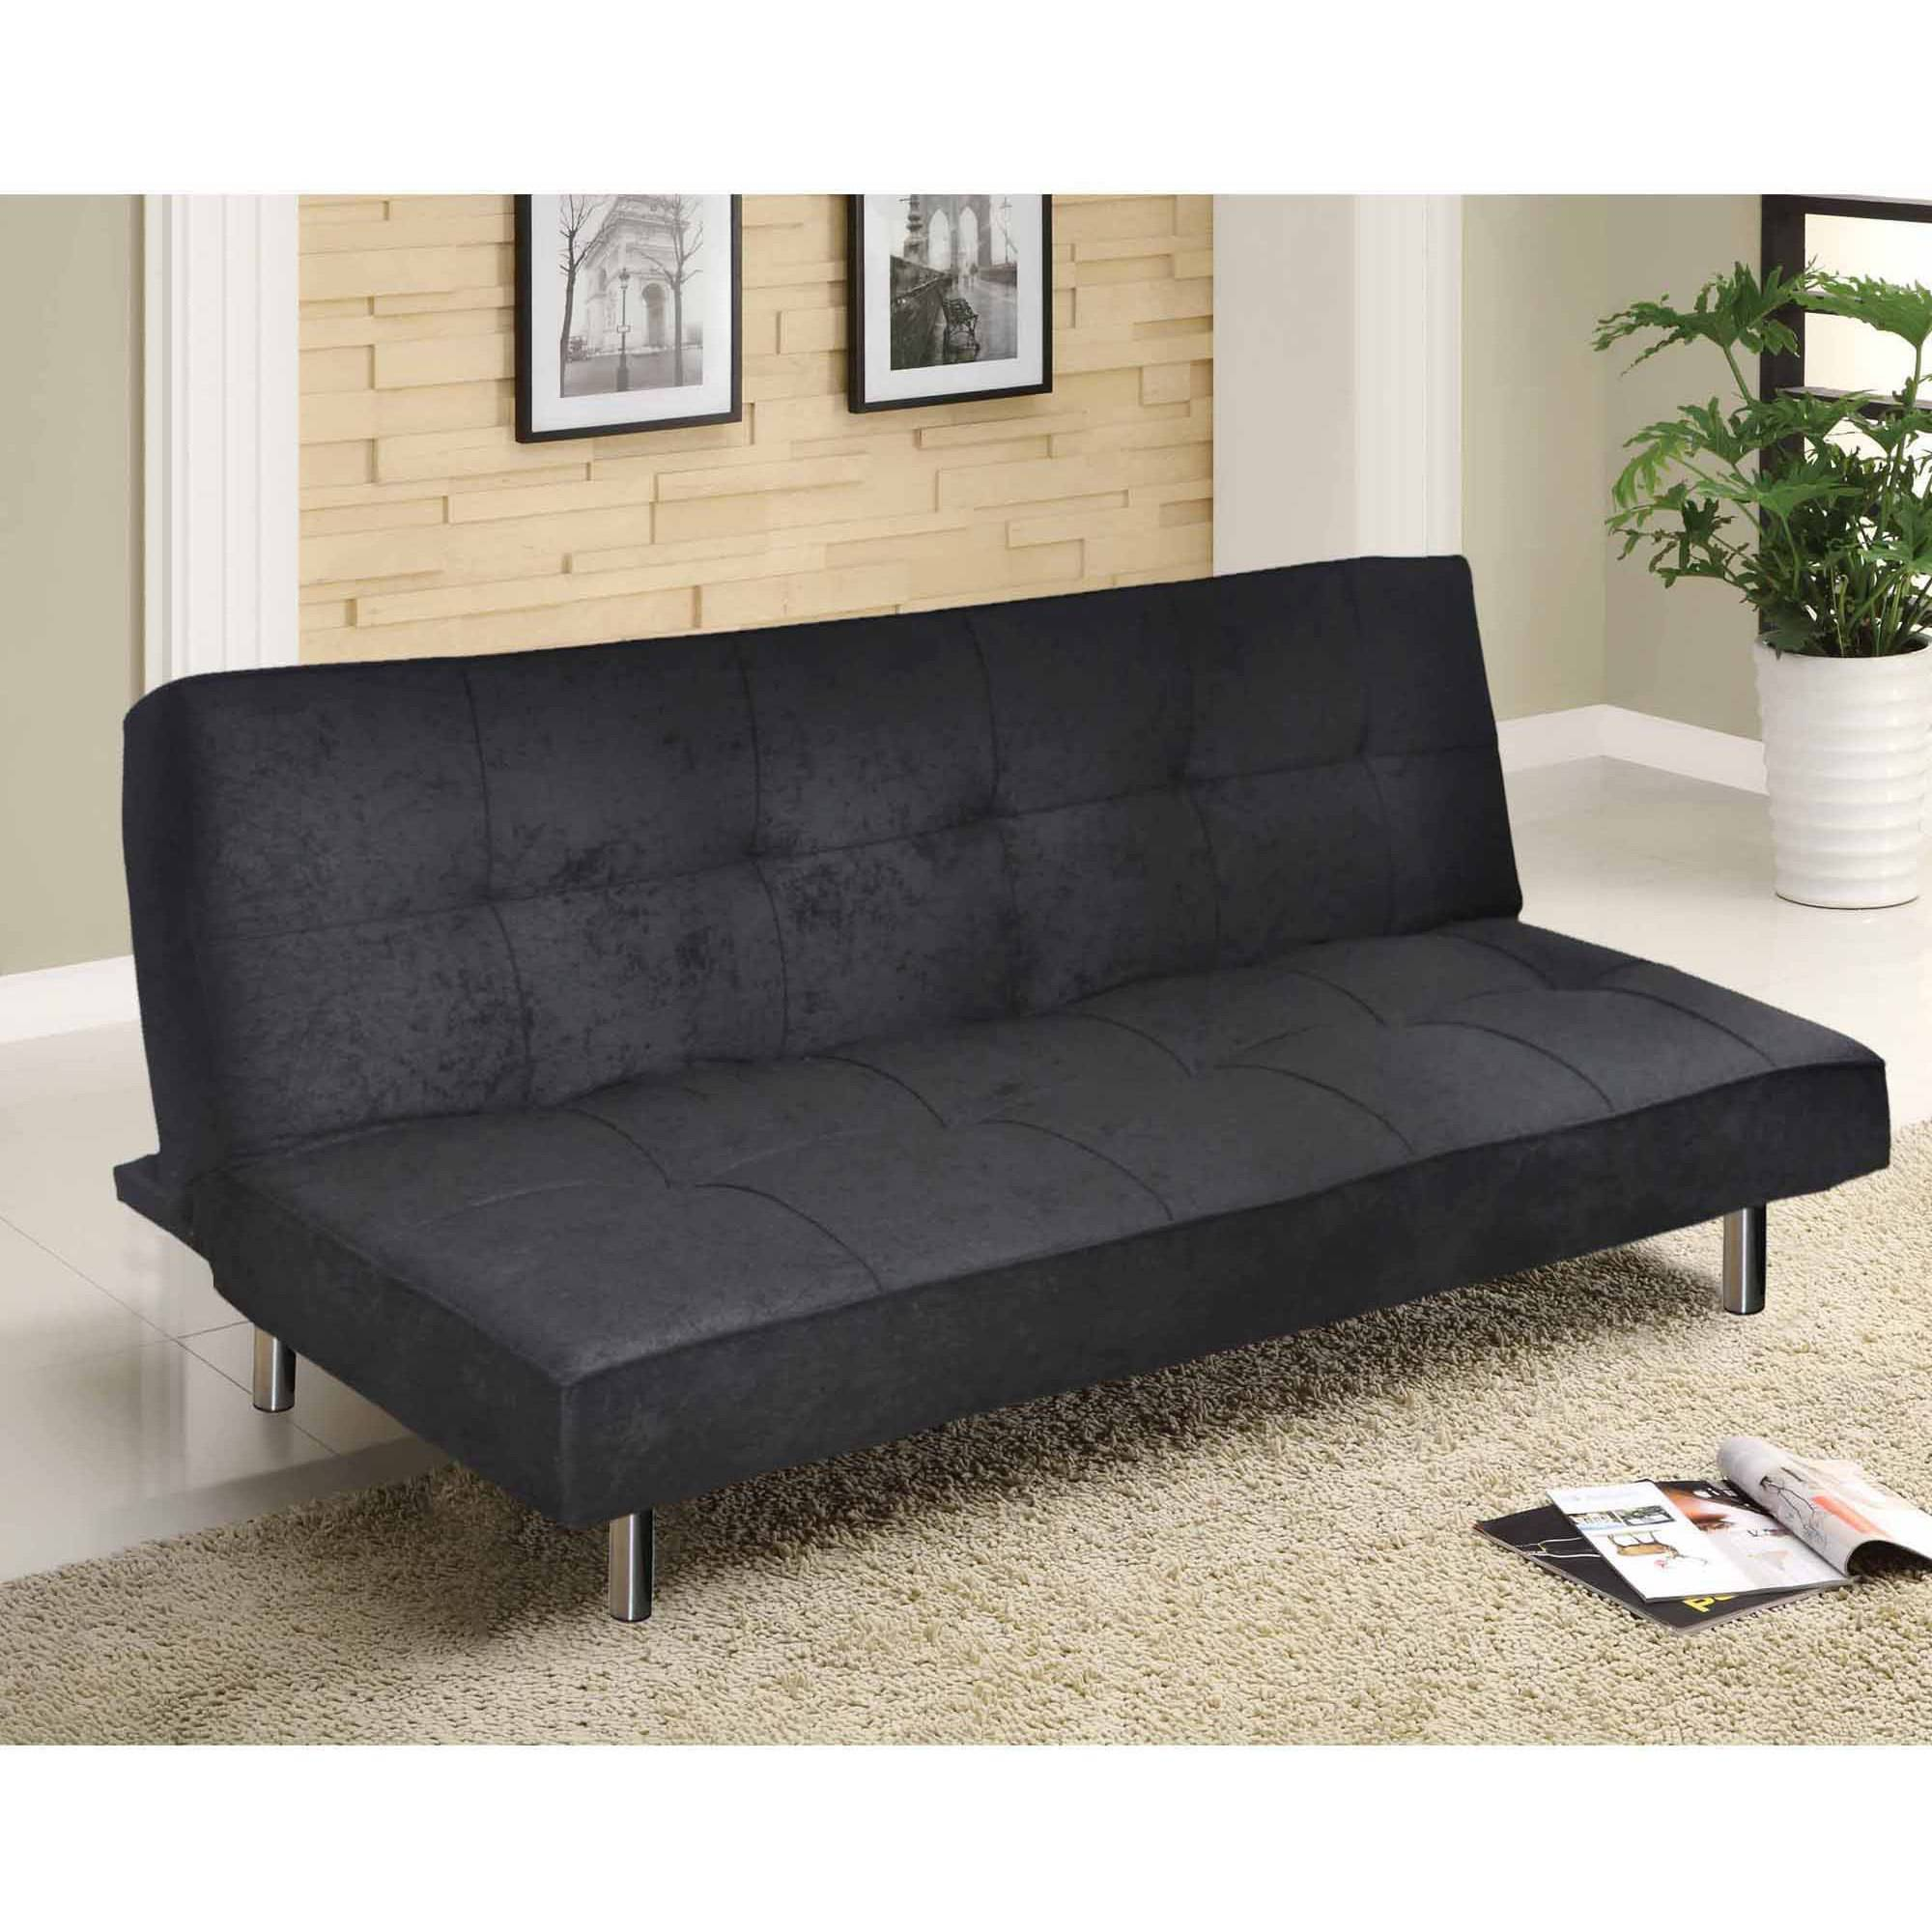 shop way url online s your store dorel cupholder the futon with shld black getimage madison